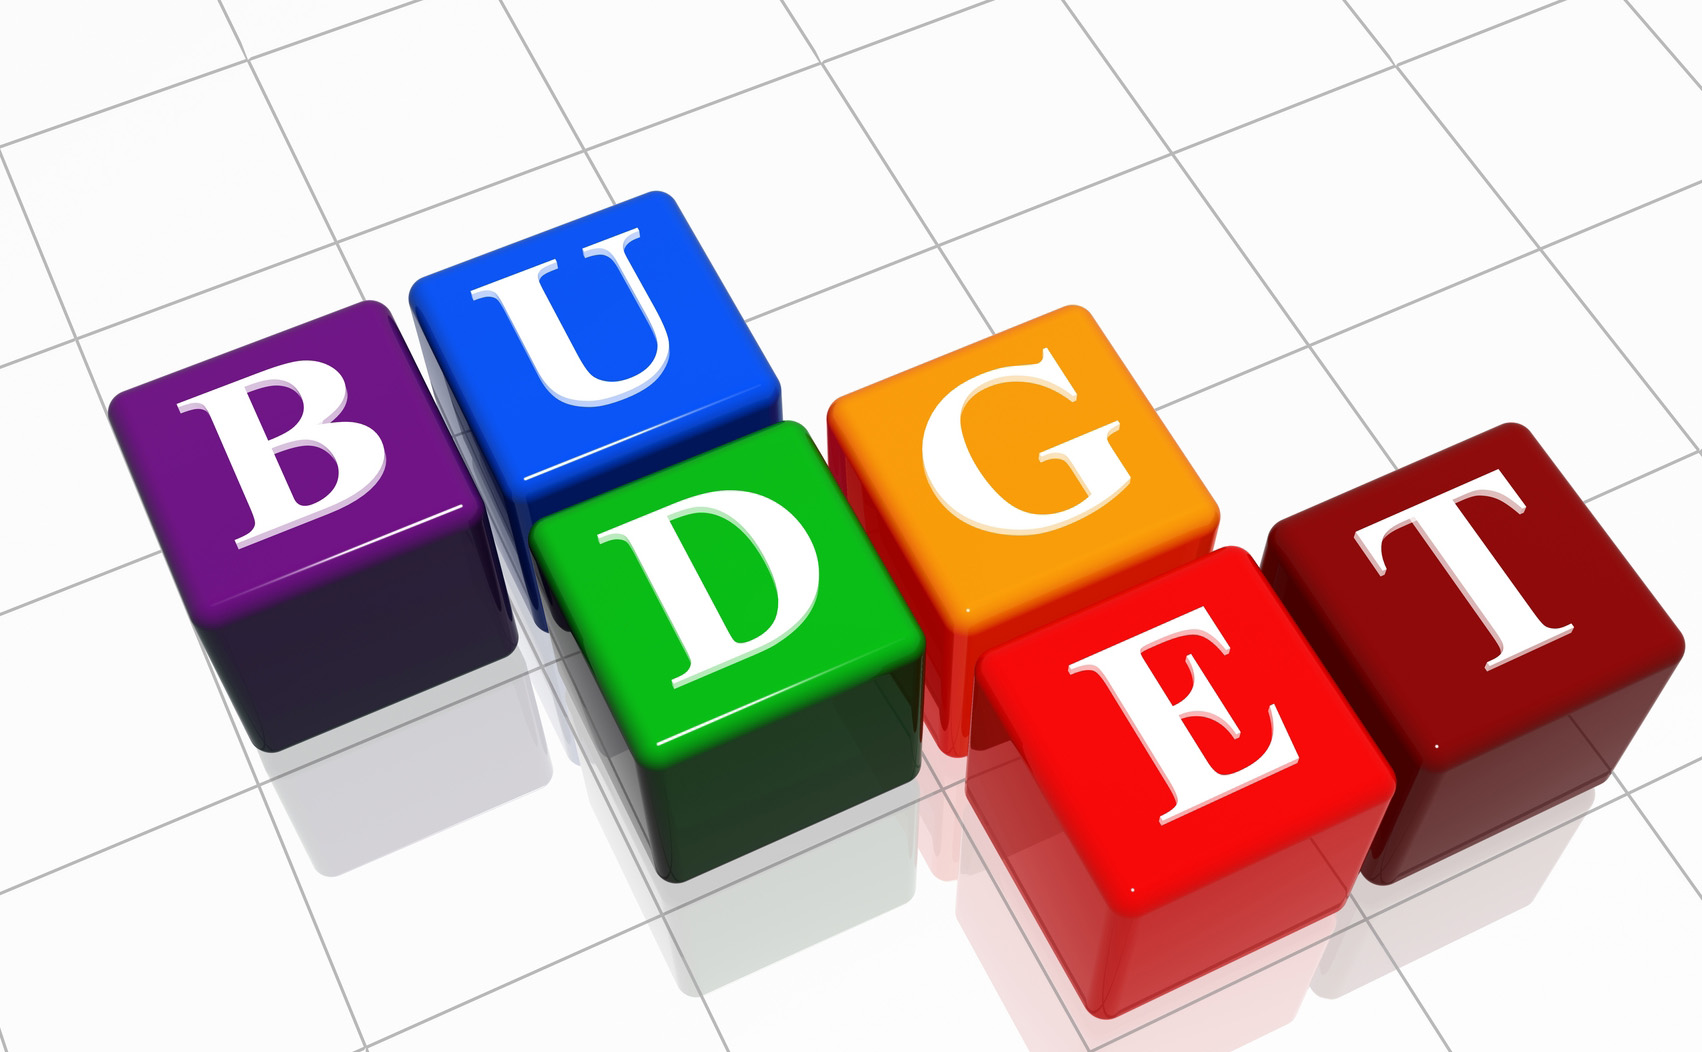 spending and investing practices You are here home  tools & tips  quicken tips  10 basic principles of  you track and budget your spending and take steps to achieve your long-term goals .